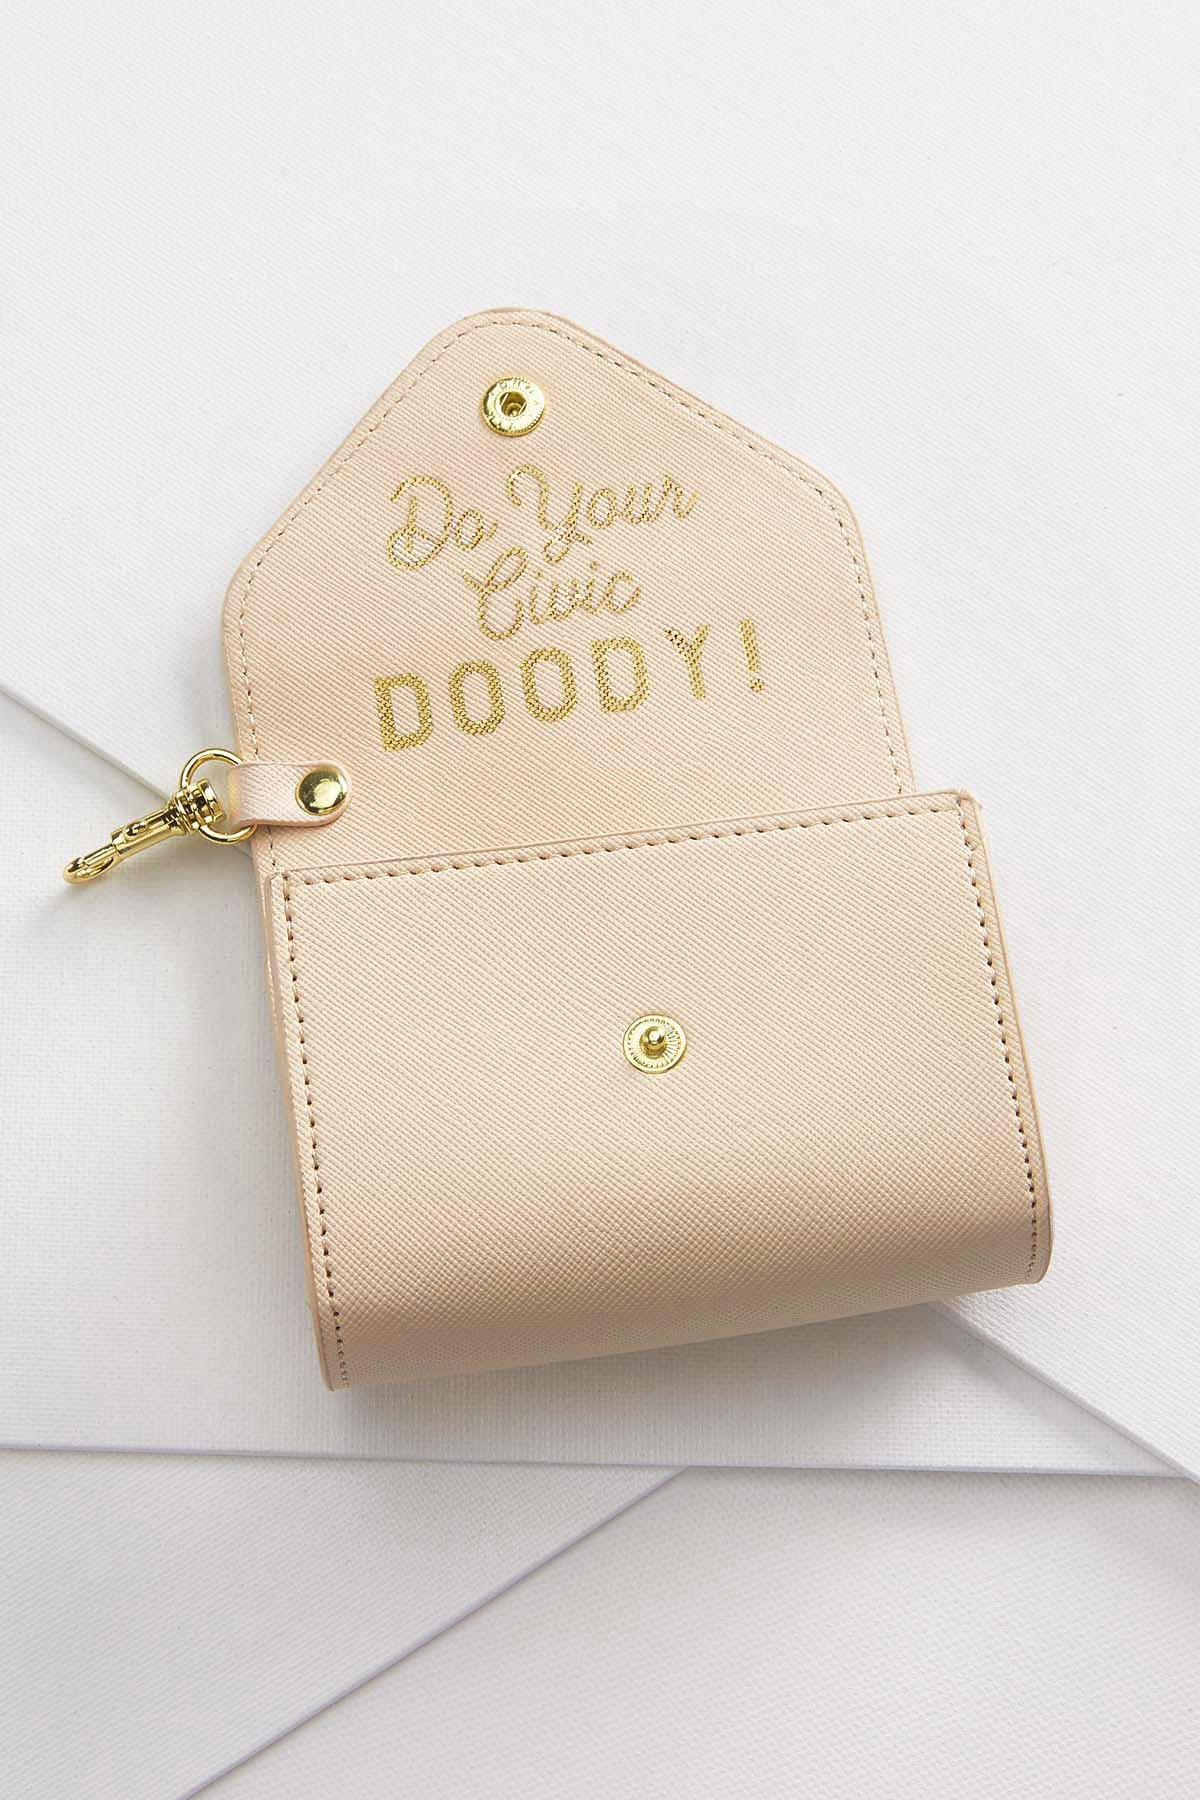 Do Your Civic Doody Waste Bag Holder